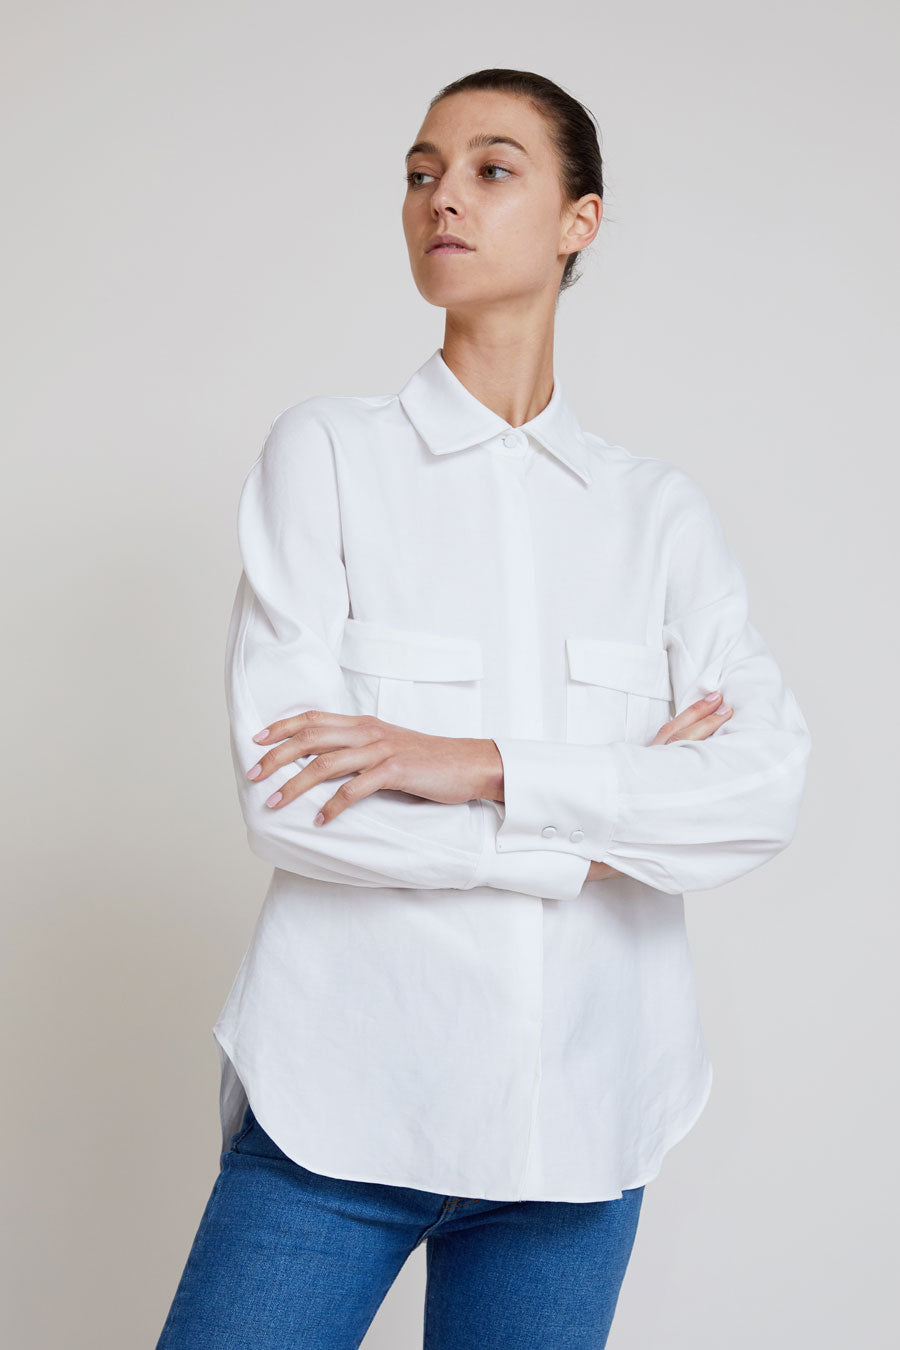 Kallmeyer Safari Blouse in White Roma Linen